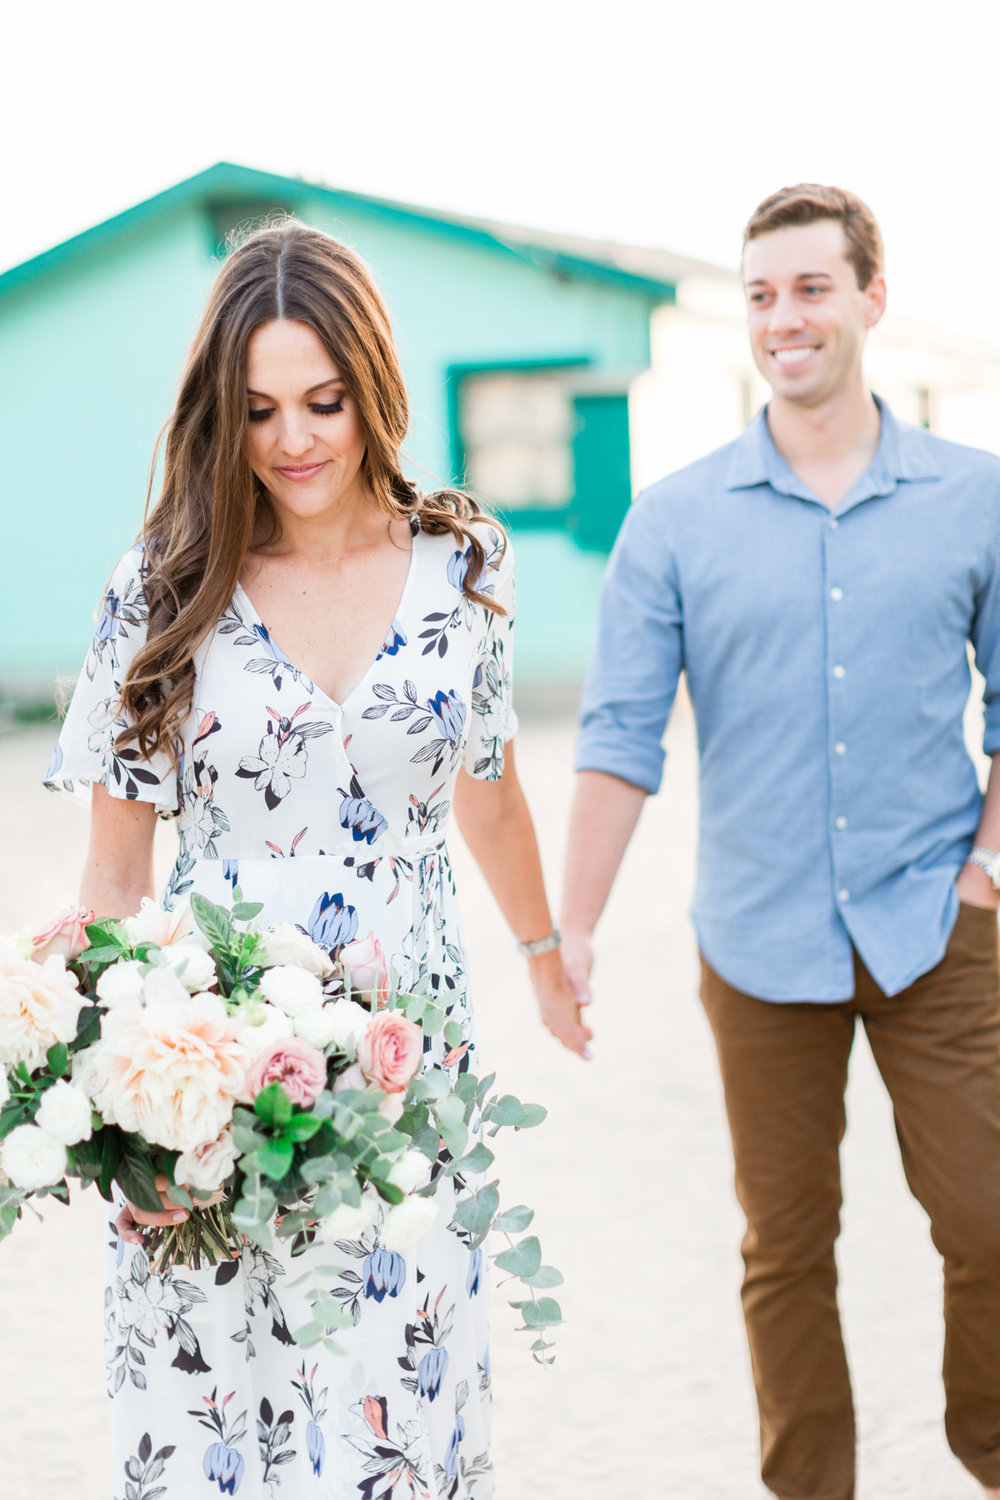 Elegant and romantic blush dahlia, white rose and eucalyptus bouquet for fun beach engagement photo session | Newport Beach, CA | Compass Floral | Wedding Florist in San Diego and Southern California | Cavin Elizabeth Photography